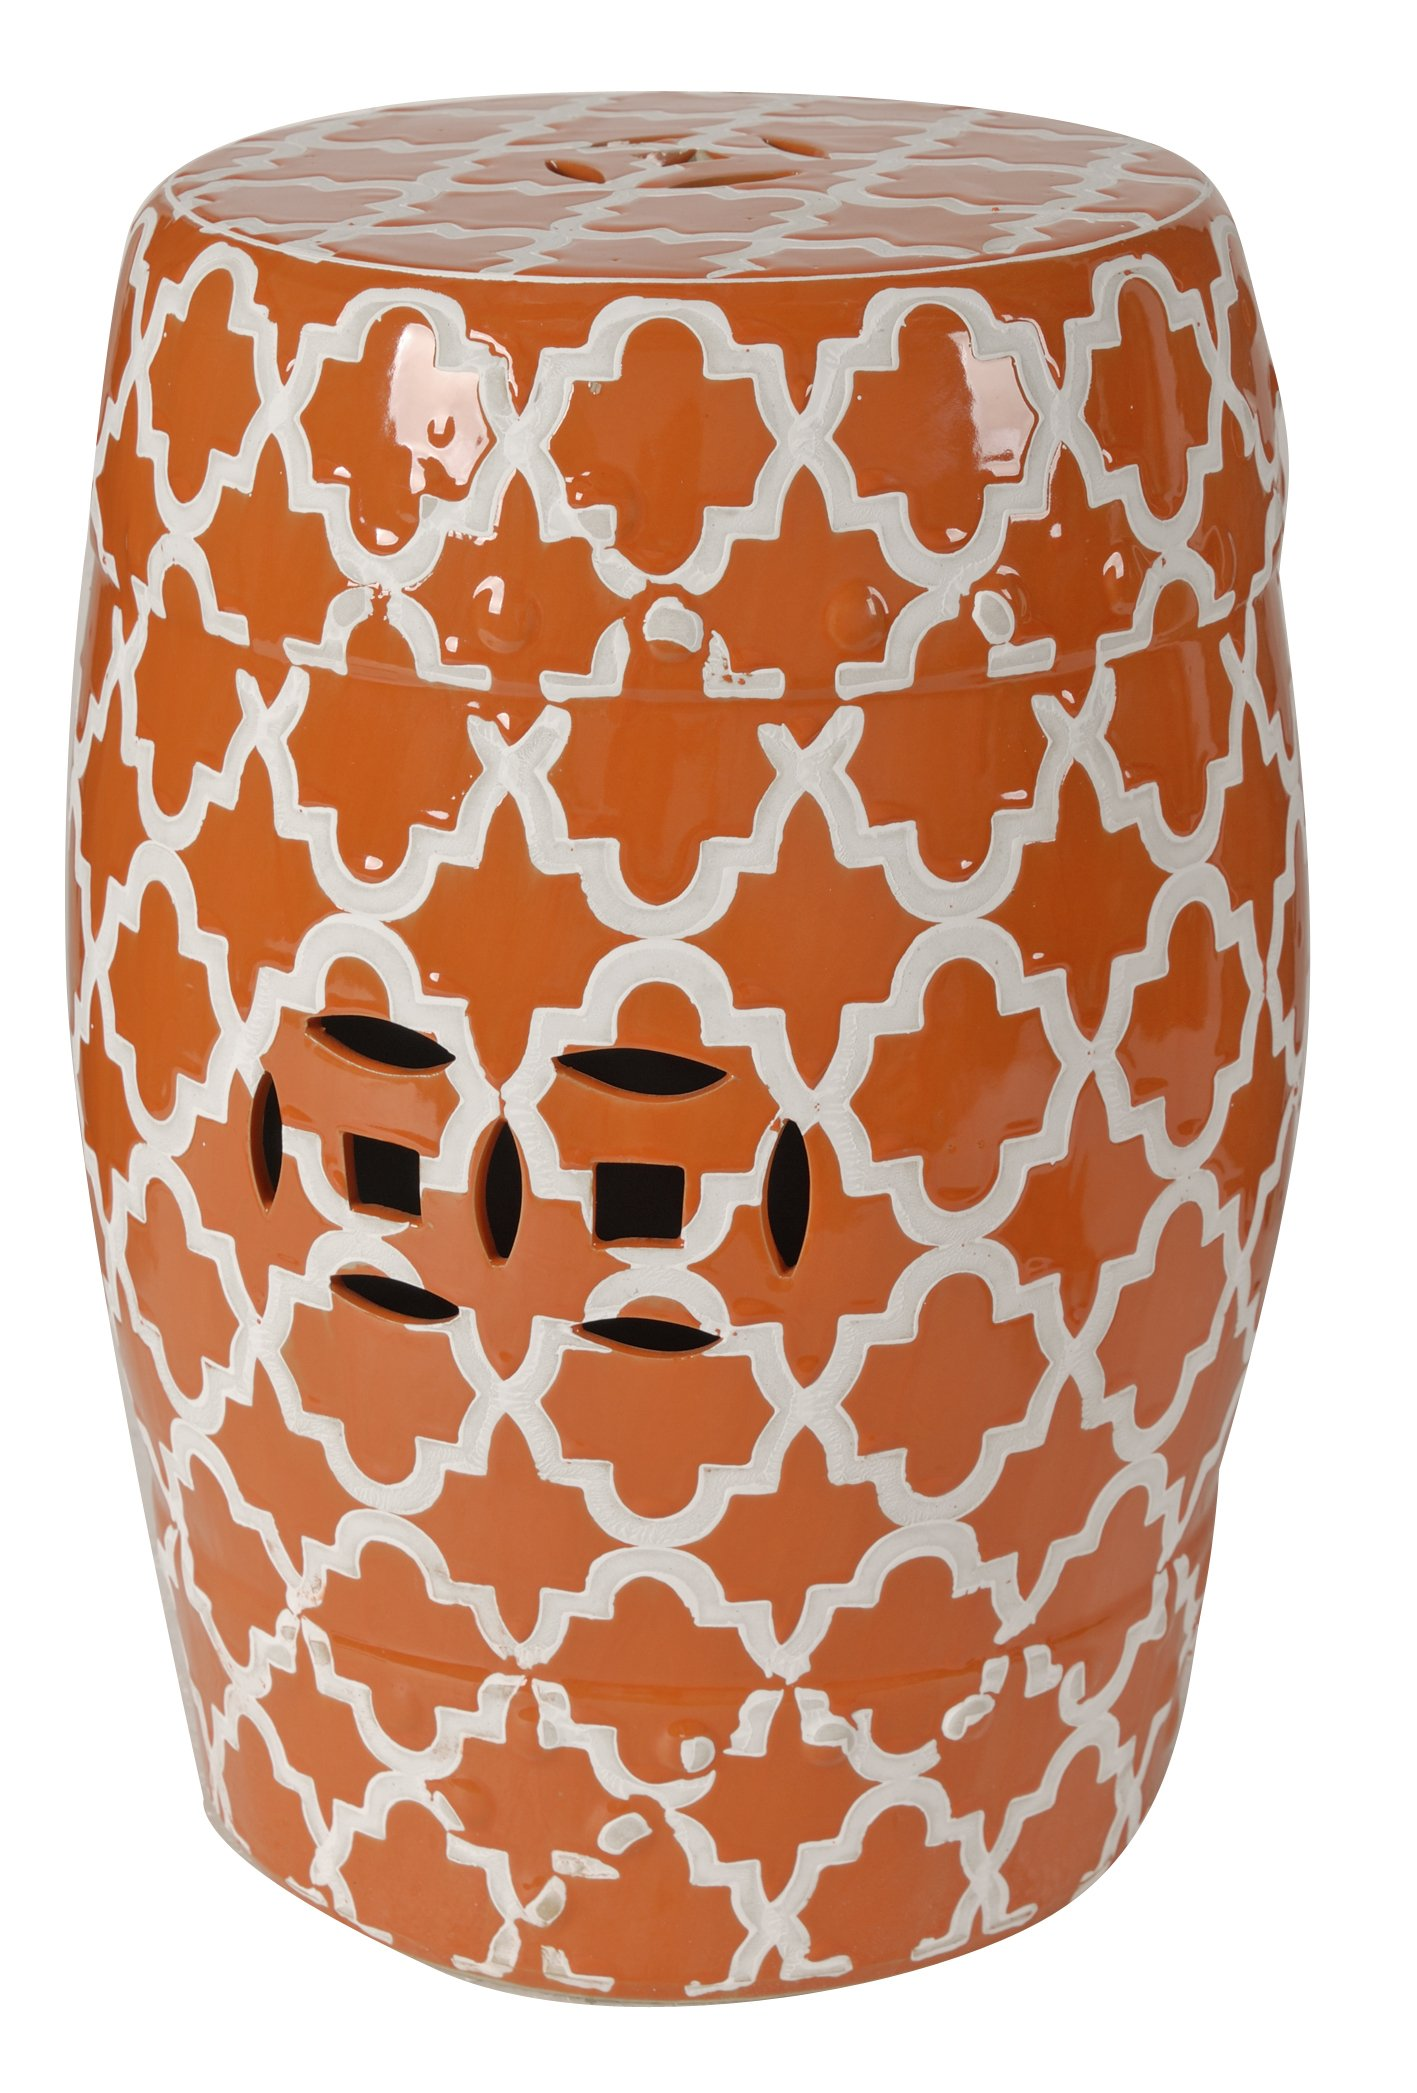 A&B Home 69634-ORAN Finley Indoor/Outdoor Patterned Stool, Orange